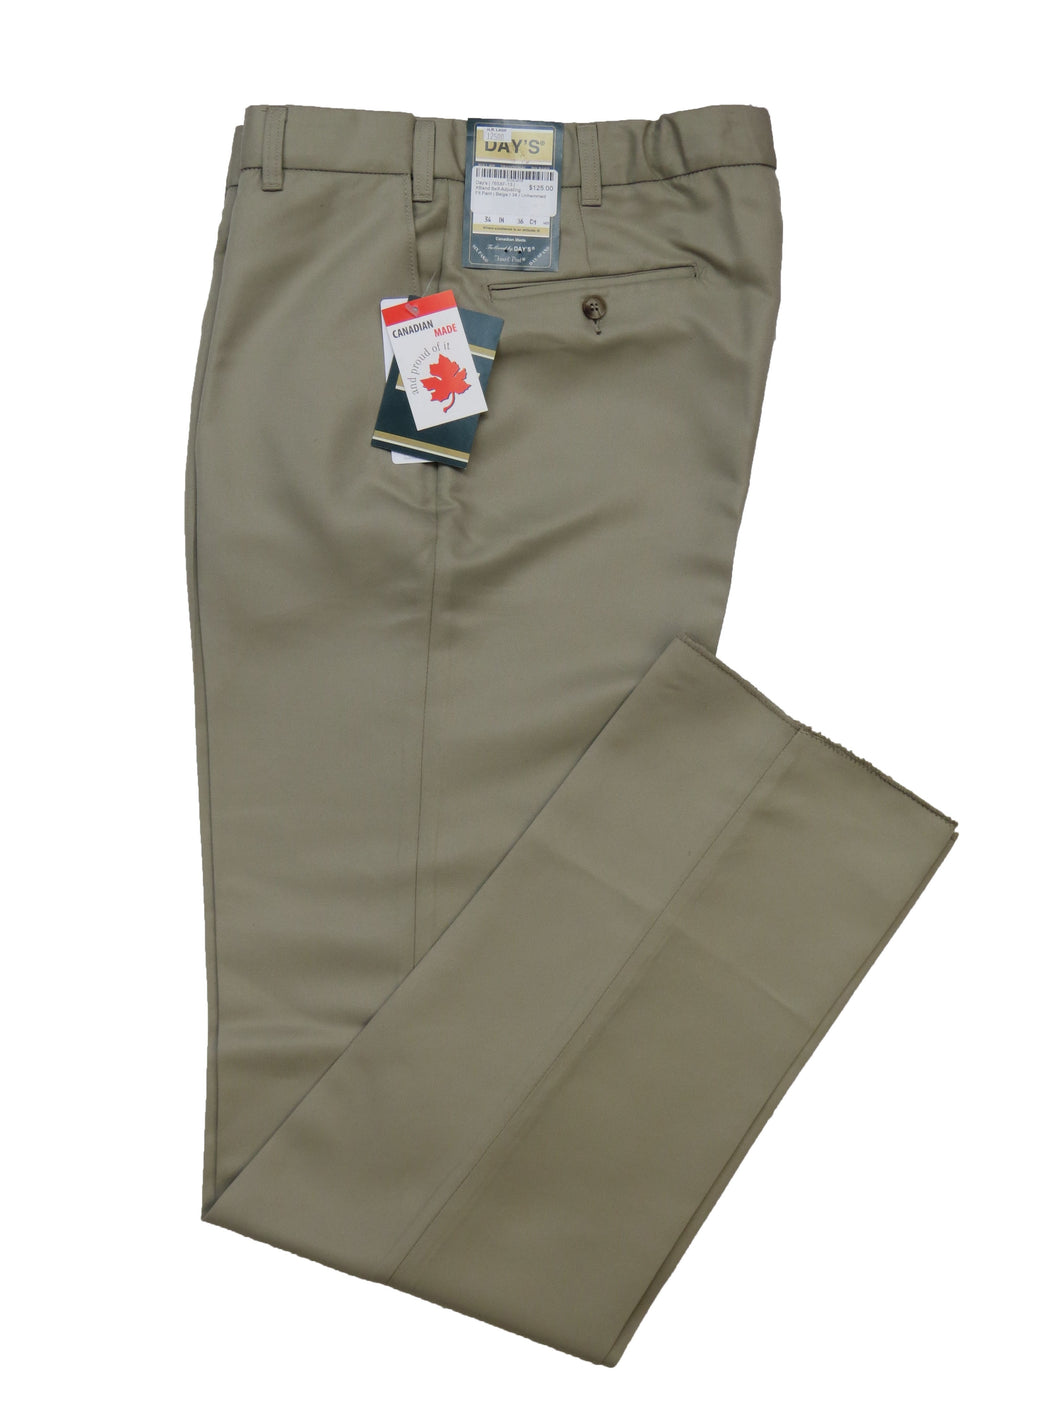 Day's | 765XF-13 | XBand Self-Adjusting Fit Pant | Beige